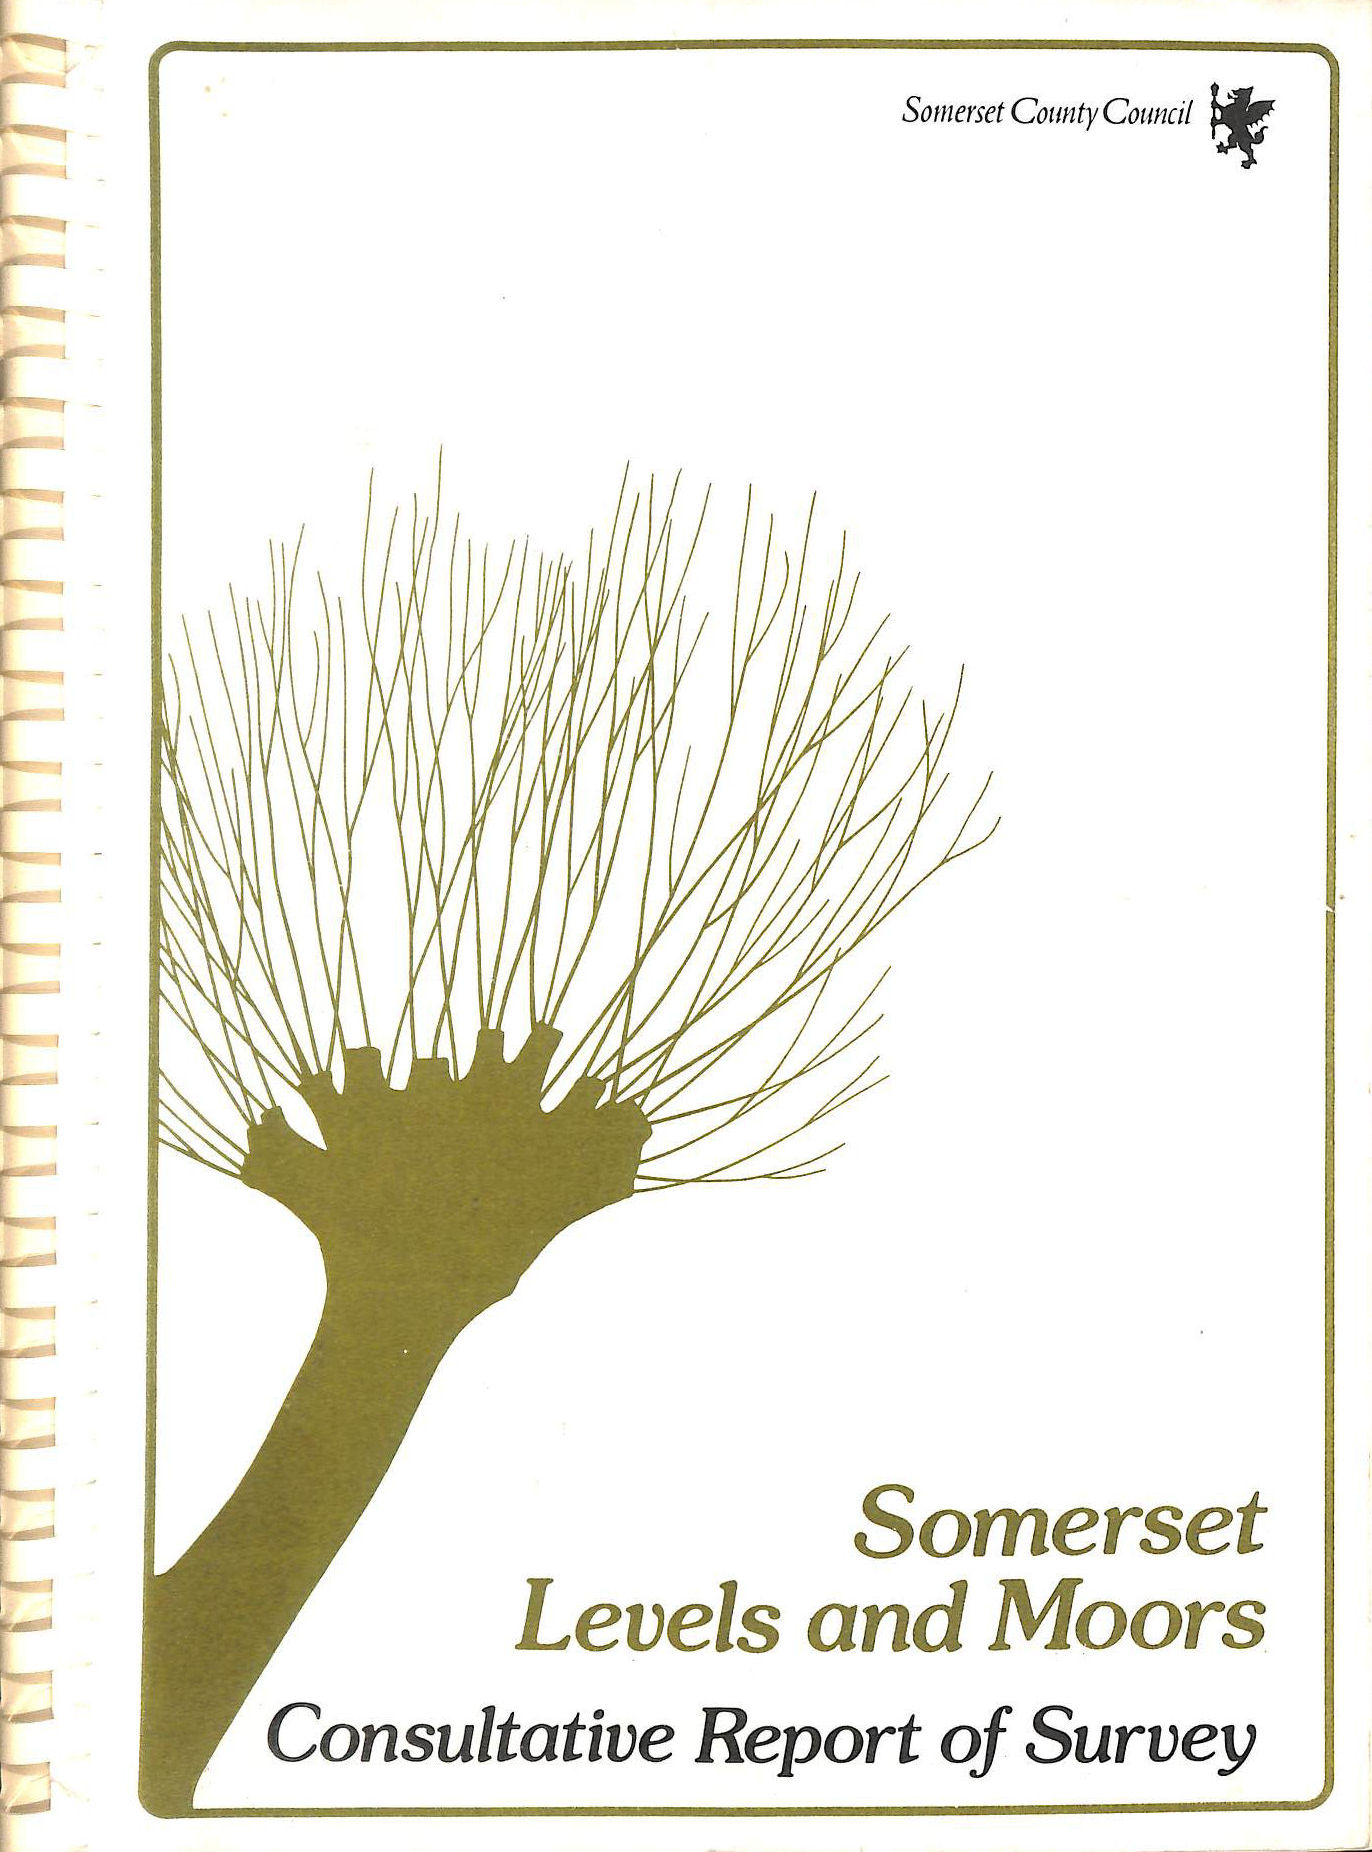 SOMERSET COUNTY COUNCIL - Countryside Subject Plan - Landscape (Levels and Moors): Consultative Report of Survey